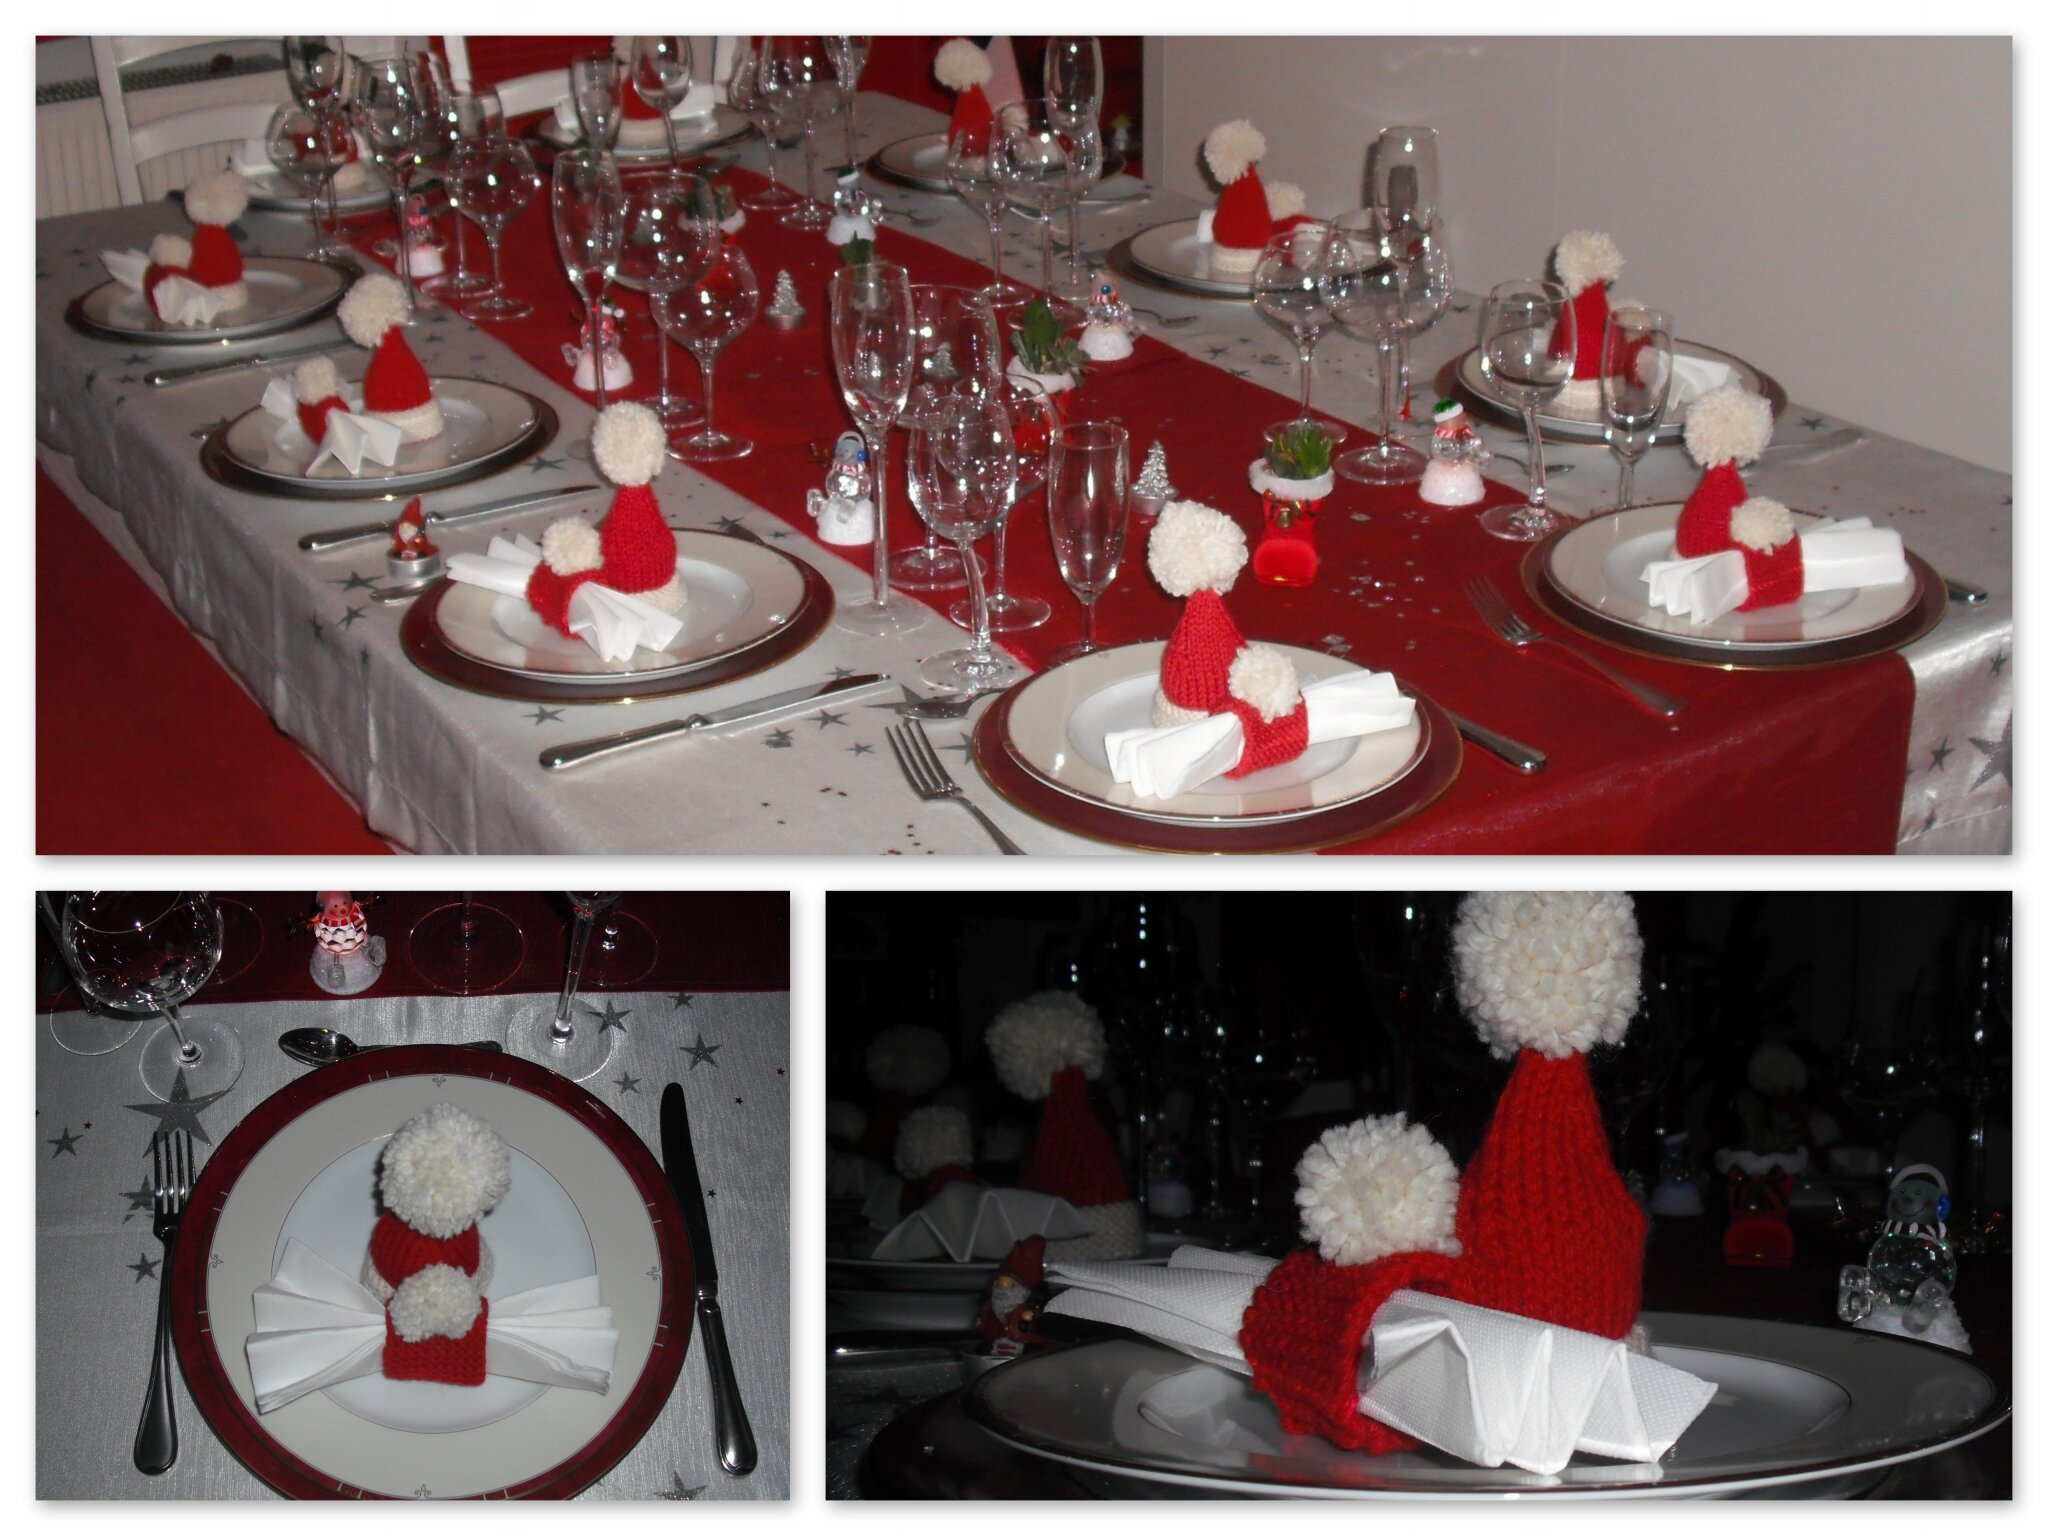 Modele De Decoration De Table De Noel Ouvrages De Saison Le Blog De Christhalinette